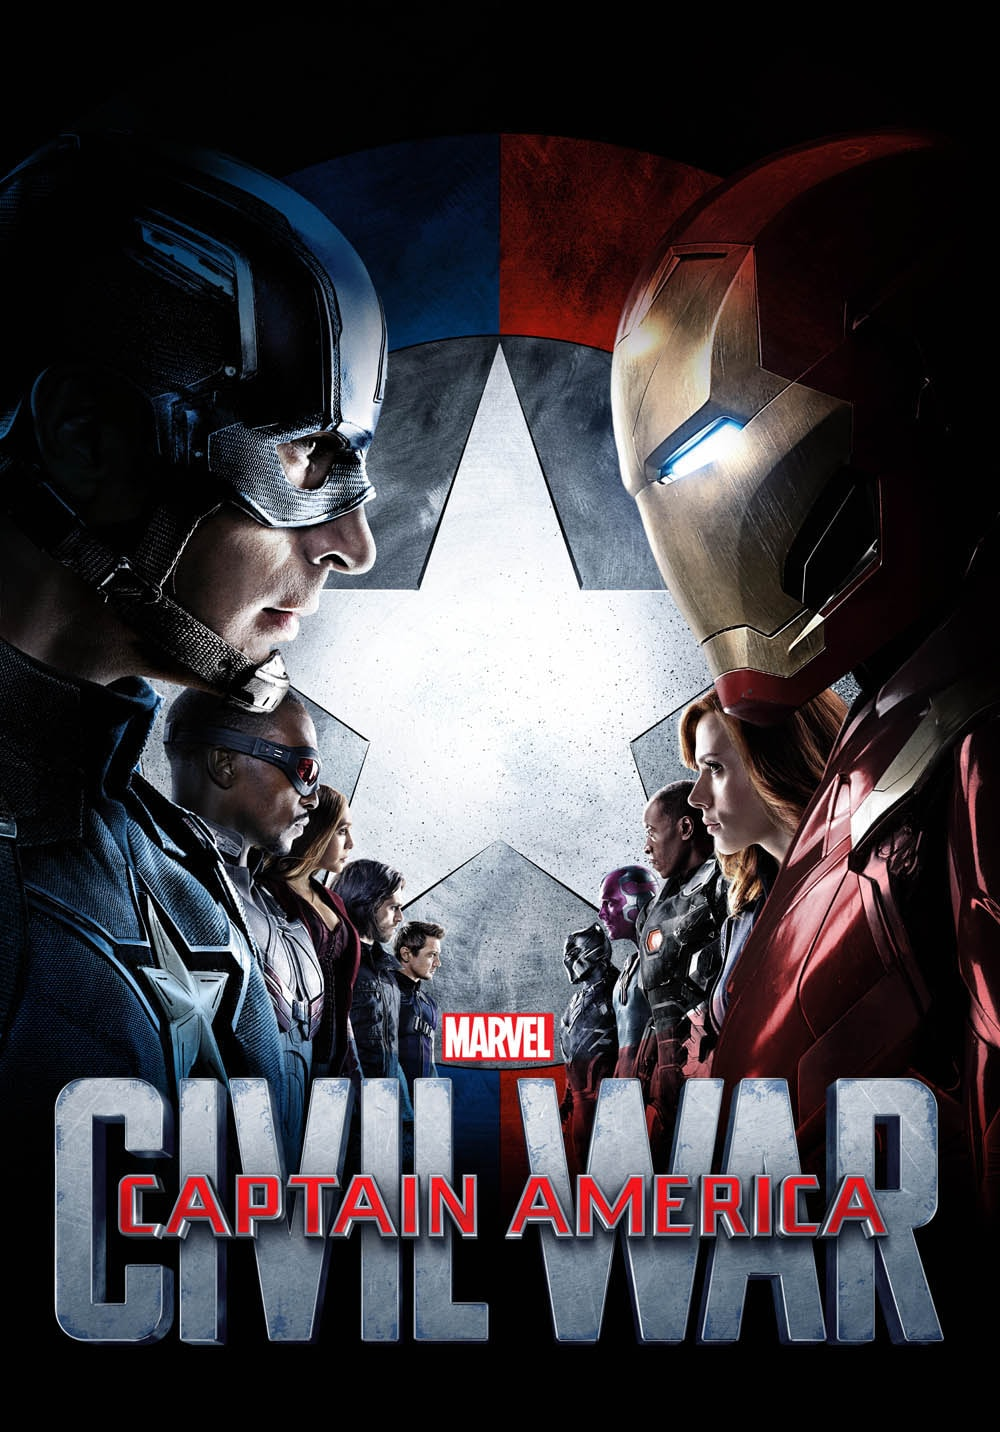 Civil War Wallpaper Picture Captain America Civil War